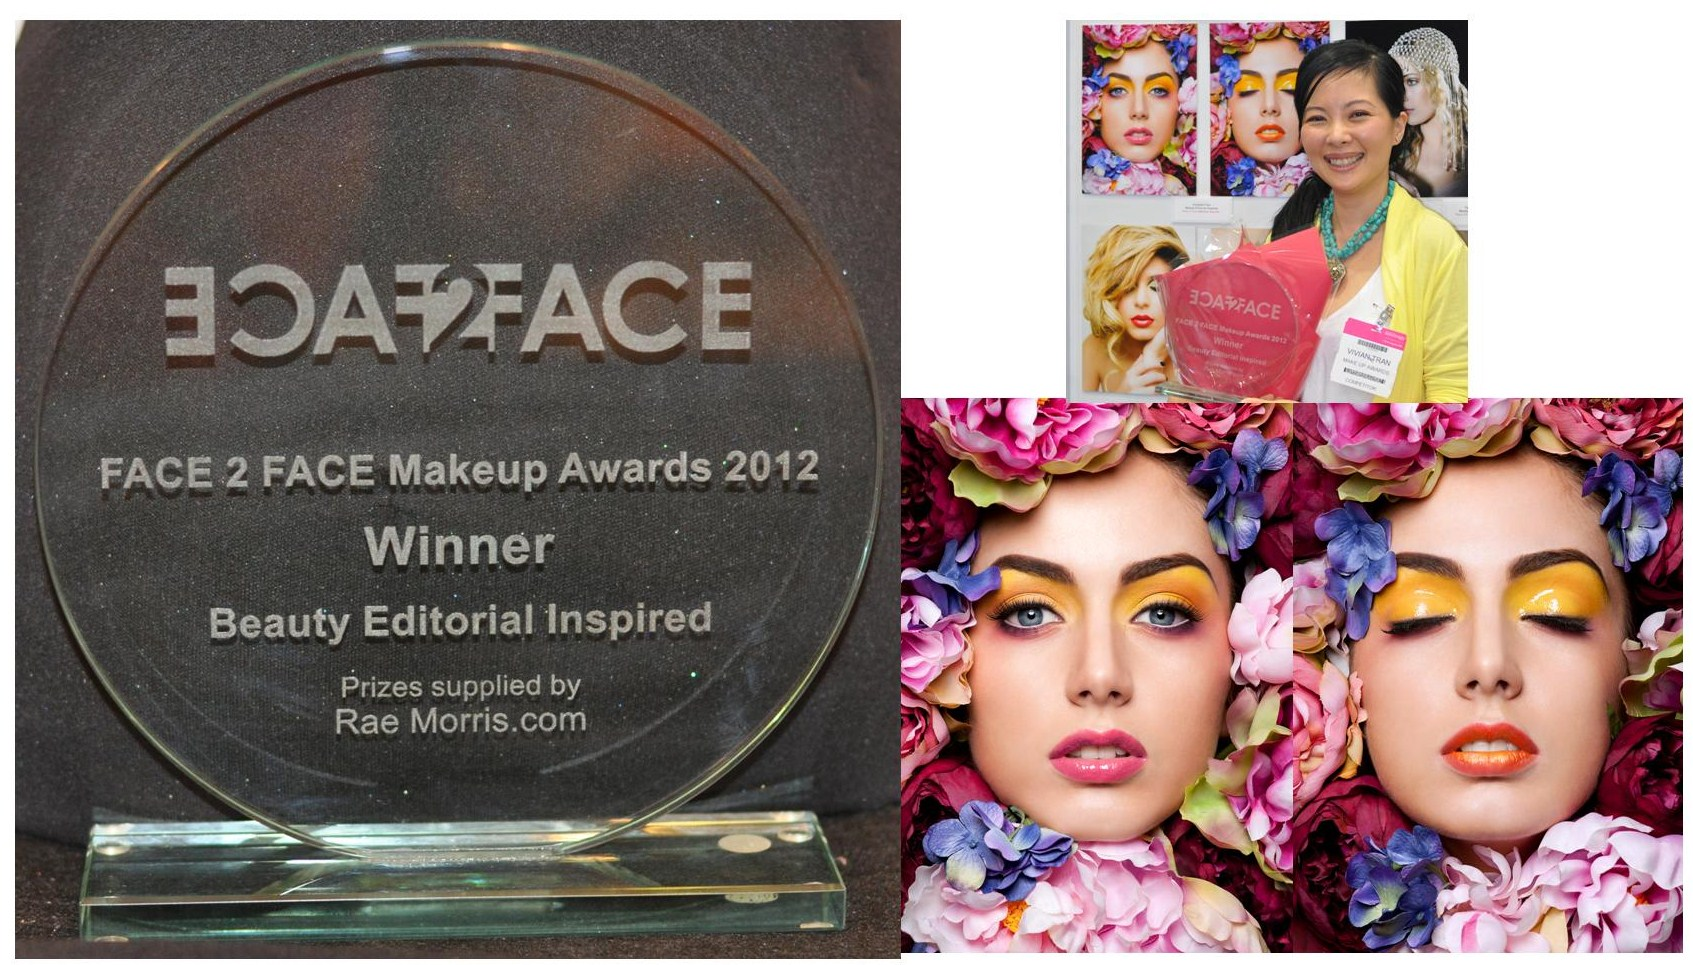 WINNER Beauty Editorial Inspired 2012. Sydney International Beauty and Spa Expo.jpg